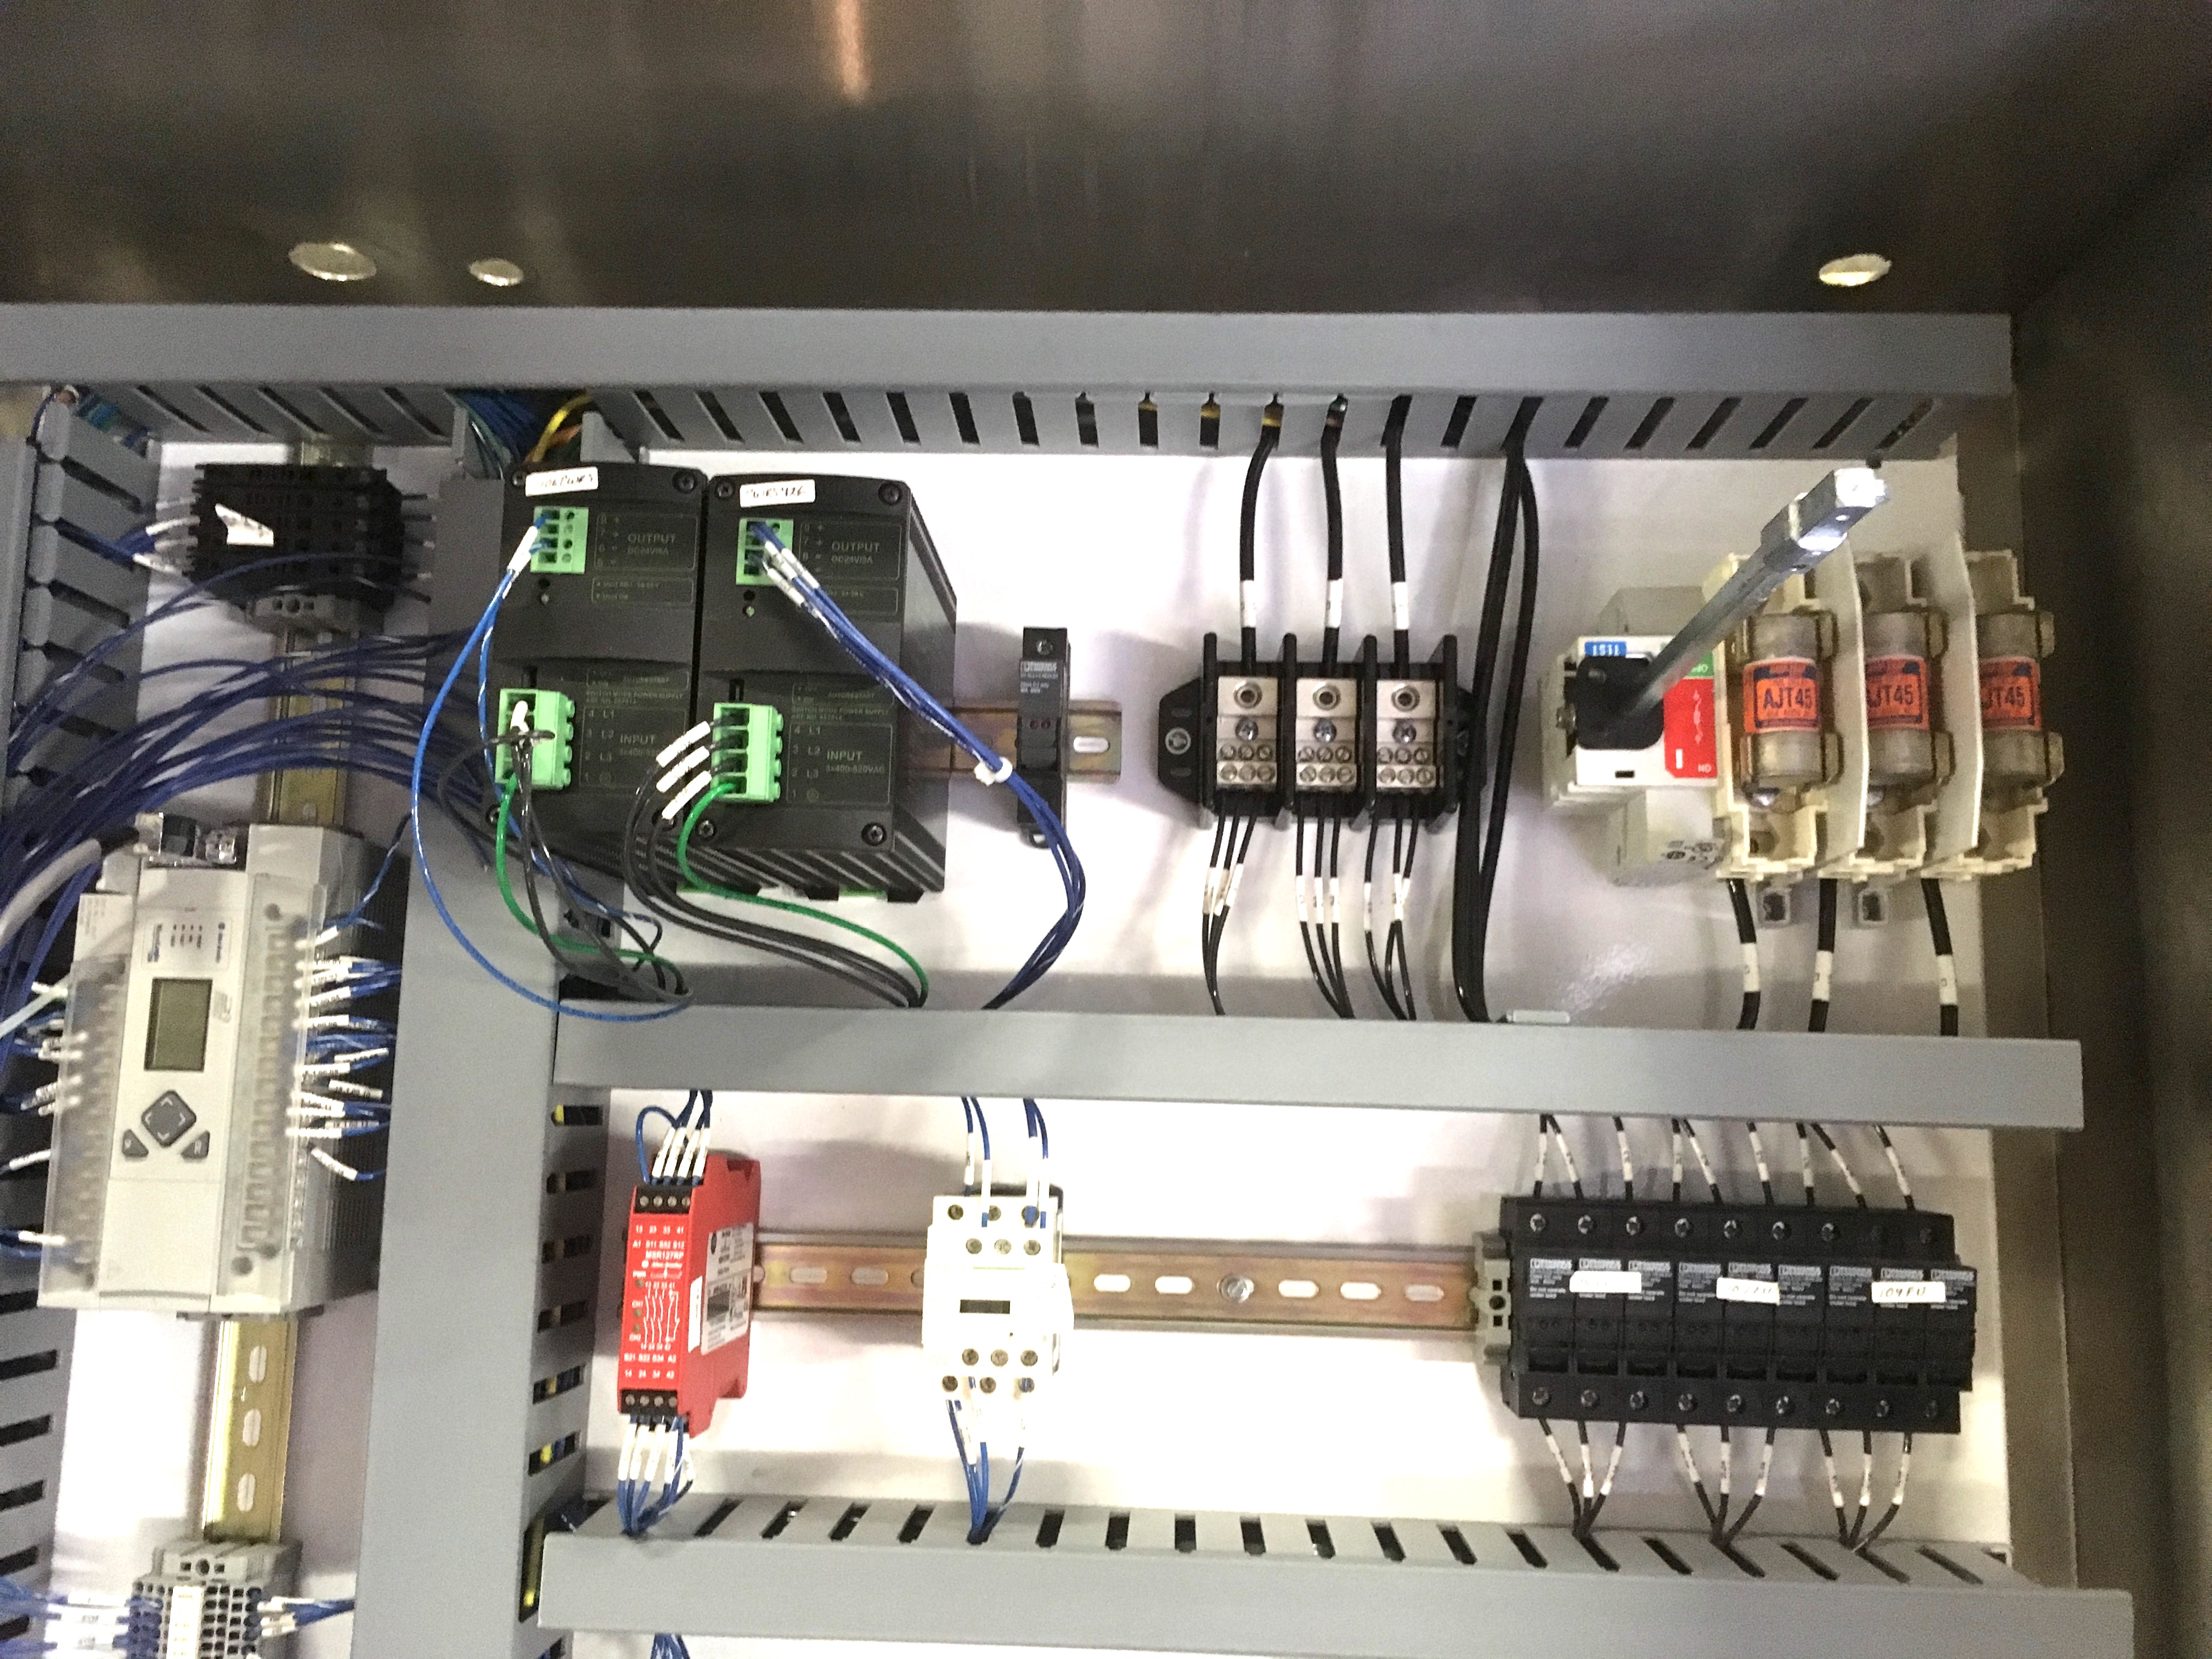 Stainless Steel Control Panel with Allen Bradley Micrologix 1400 Processor : micrologix 1400 wiring - yogabreezes.com